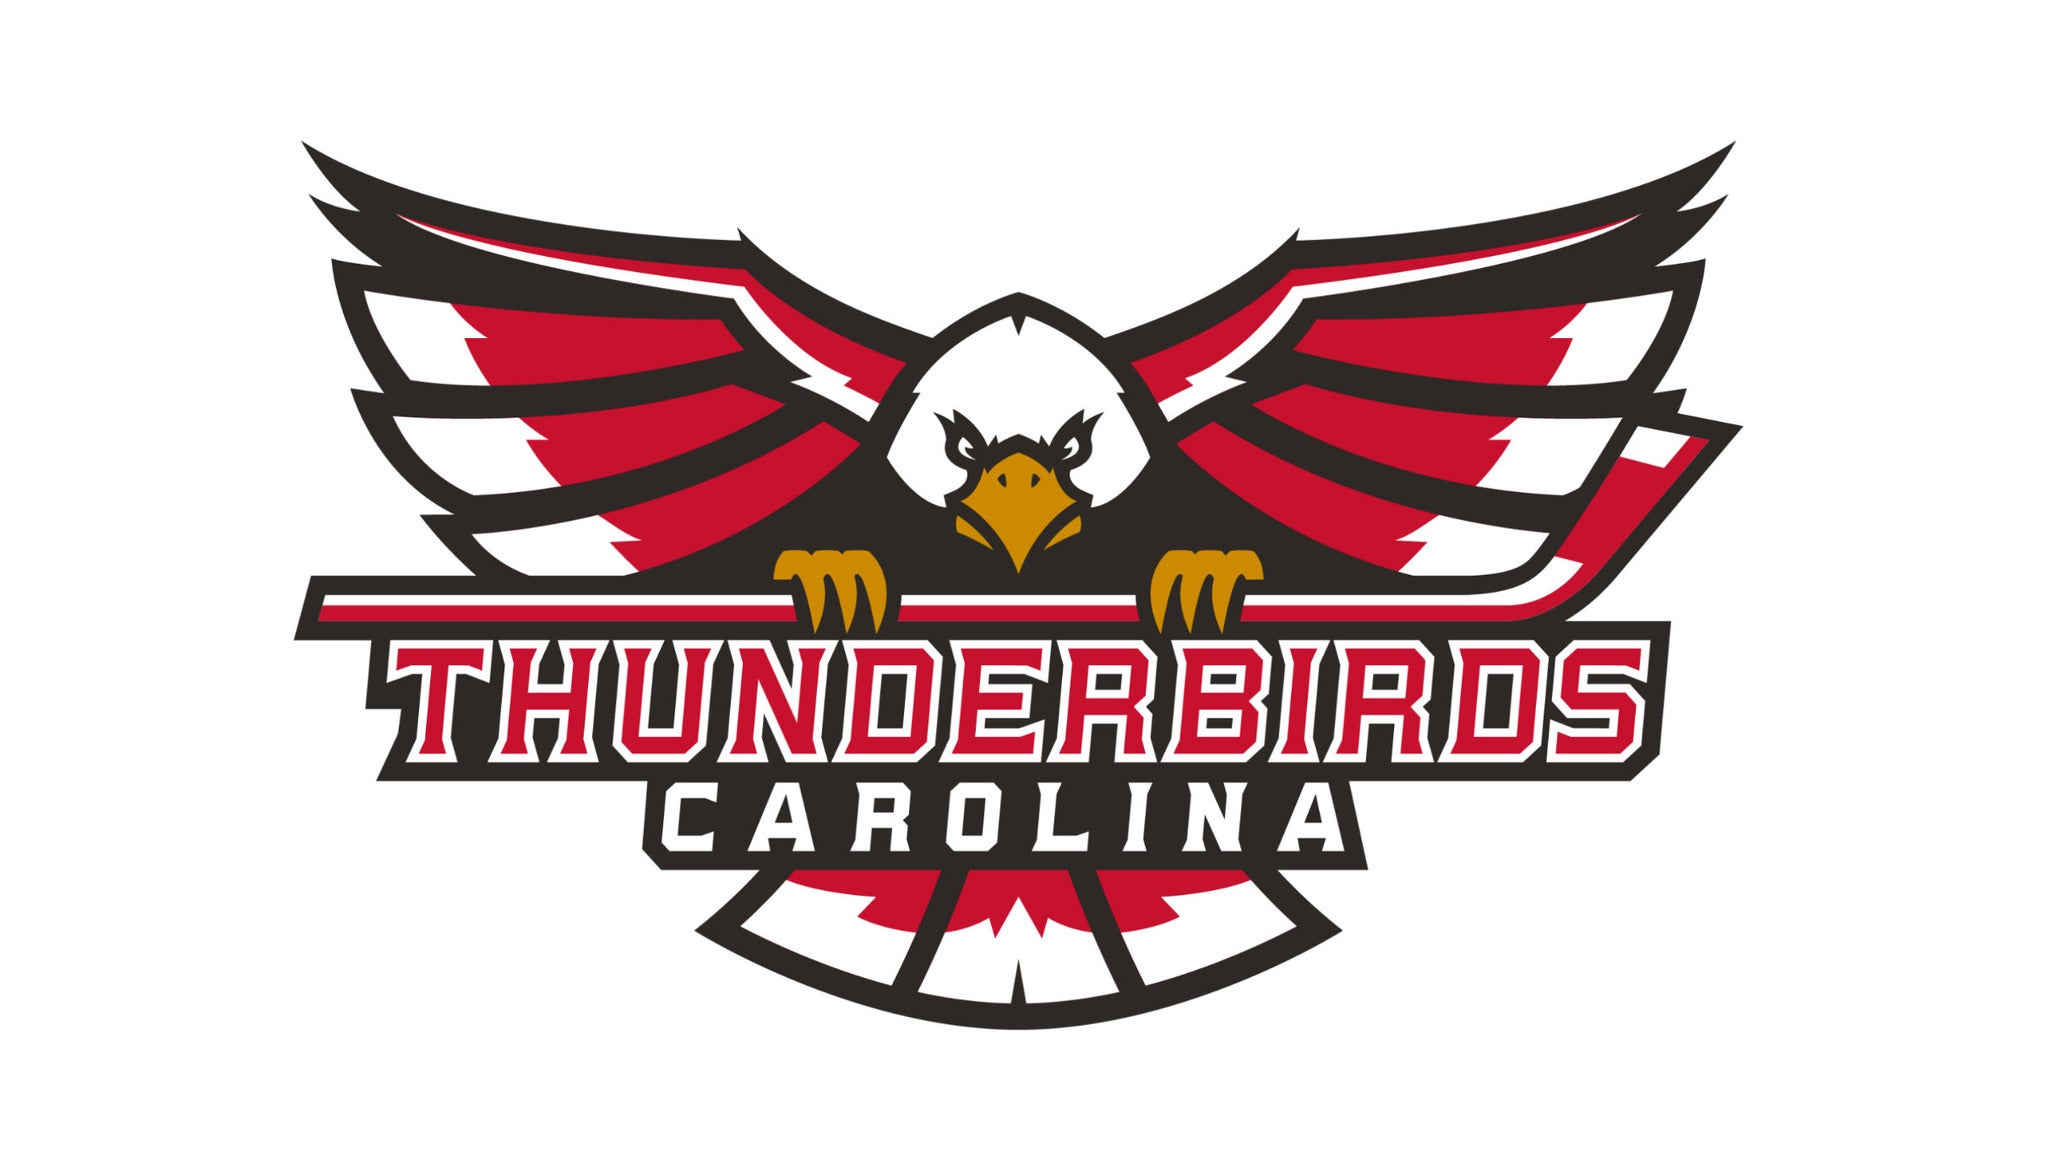 Carolina Thunderbirds vs. Danville Dashers